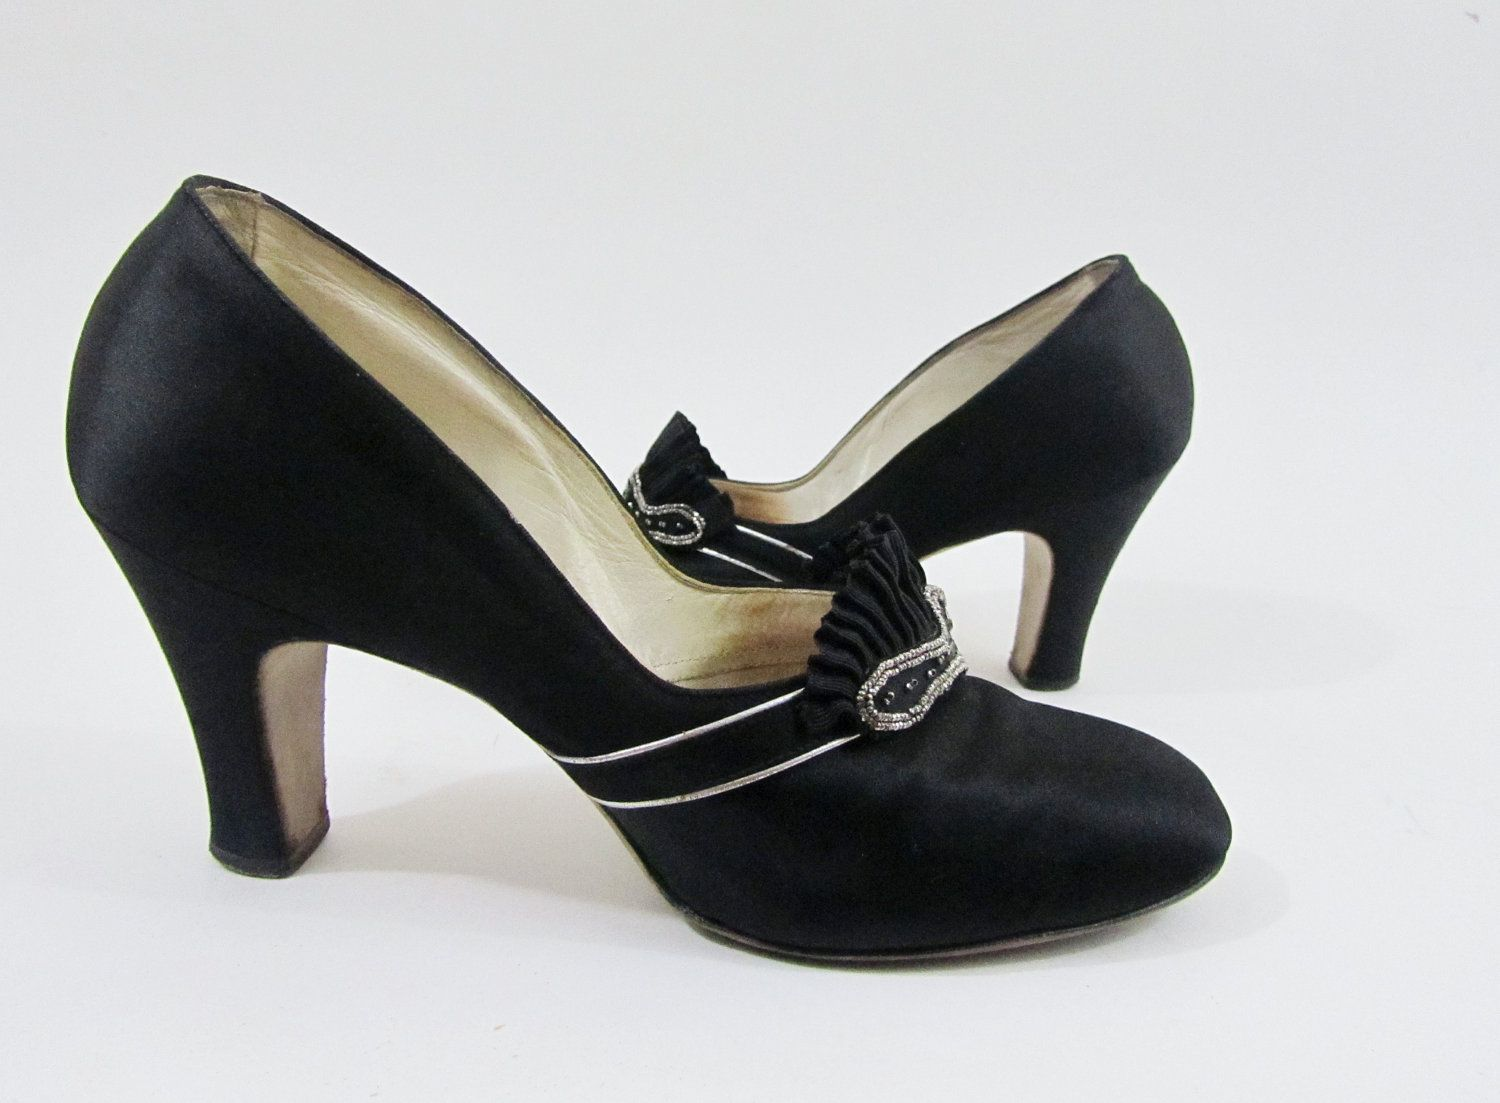 46fa80d259a6 1920s Dress Shoes   Vintage 20s Shoes in Black Silk with Silver    Rhinestone Trim.  195.00